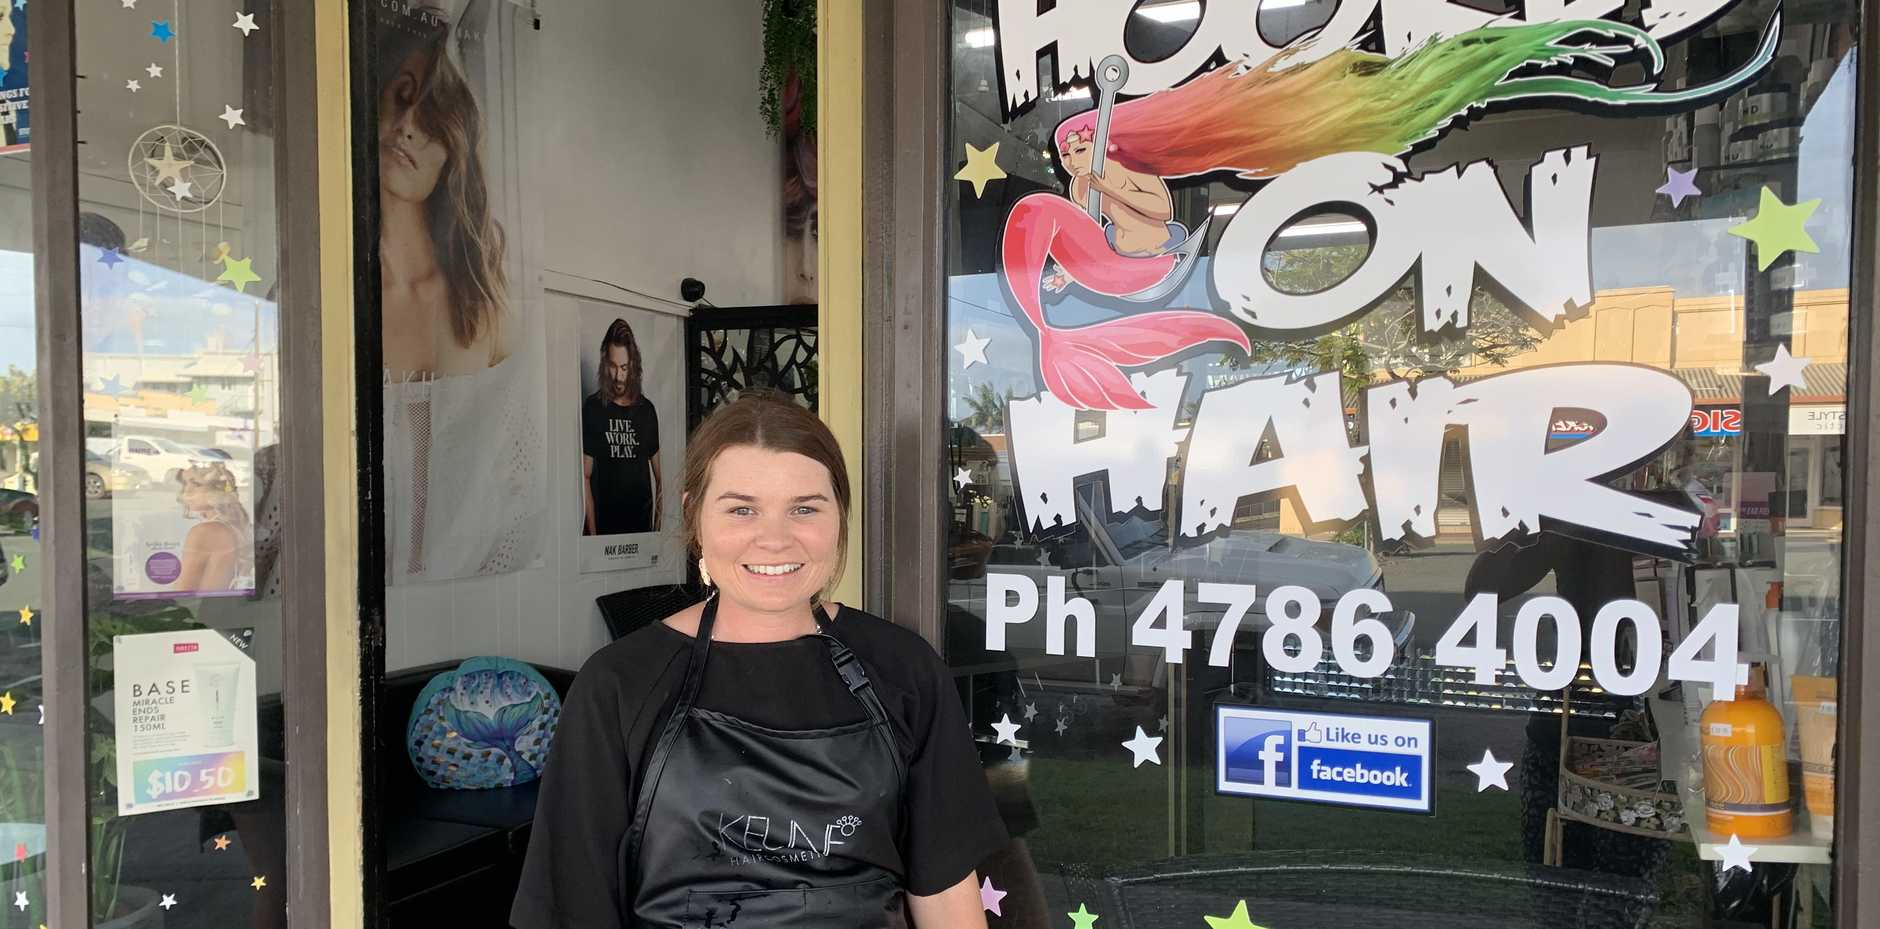 Abby Plate from Hooked on Hair say they are doing the best they can after new restrictions amid COVID-19 health crisis.